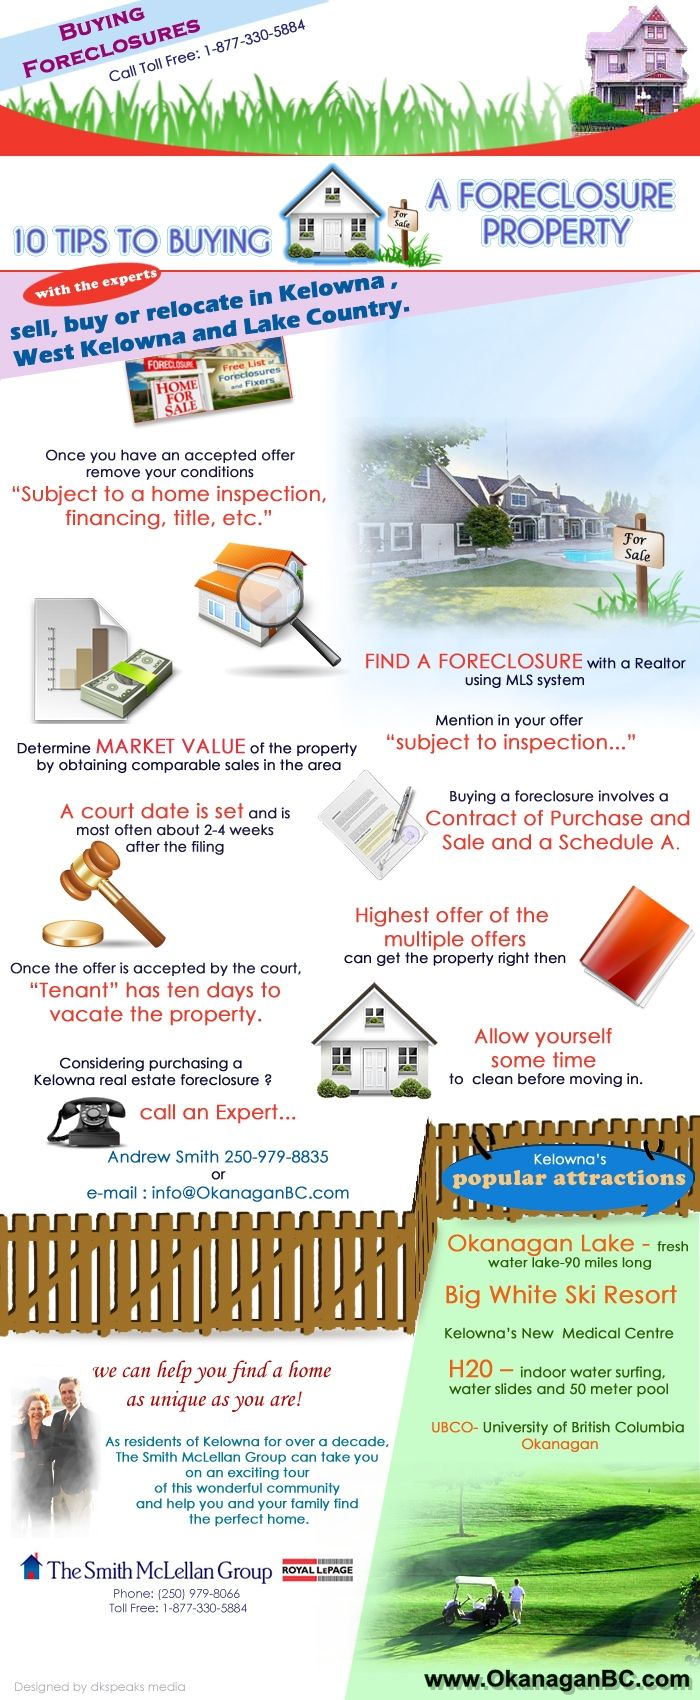 15 best Foreclosure images on Pinterest | Real estate business, Real ...